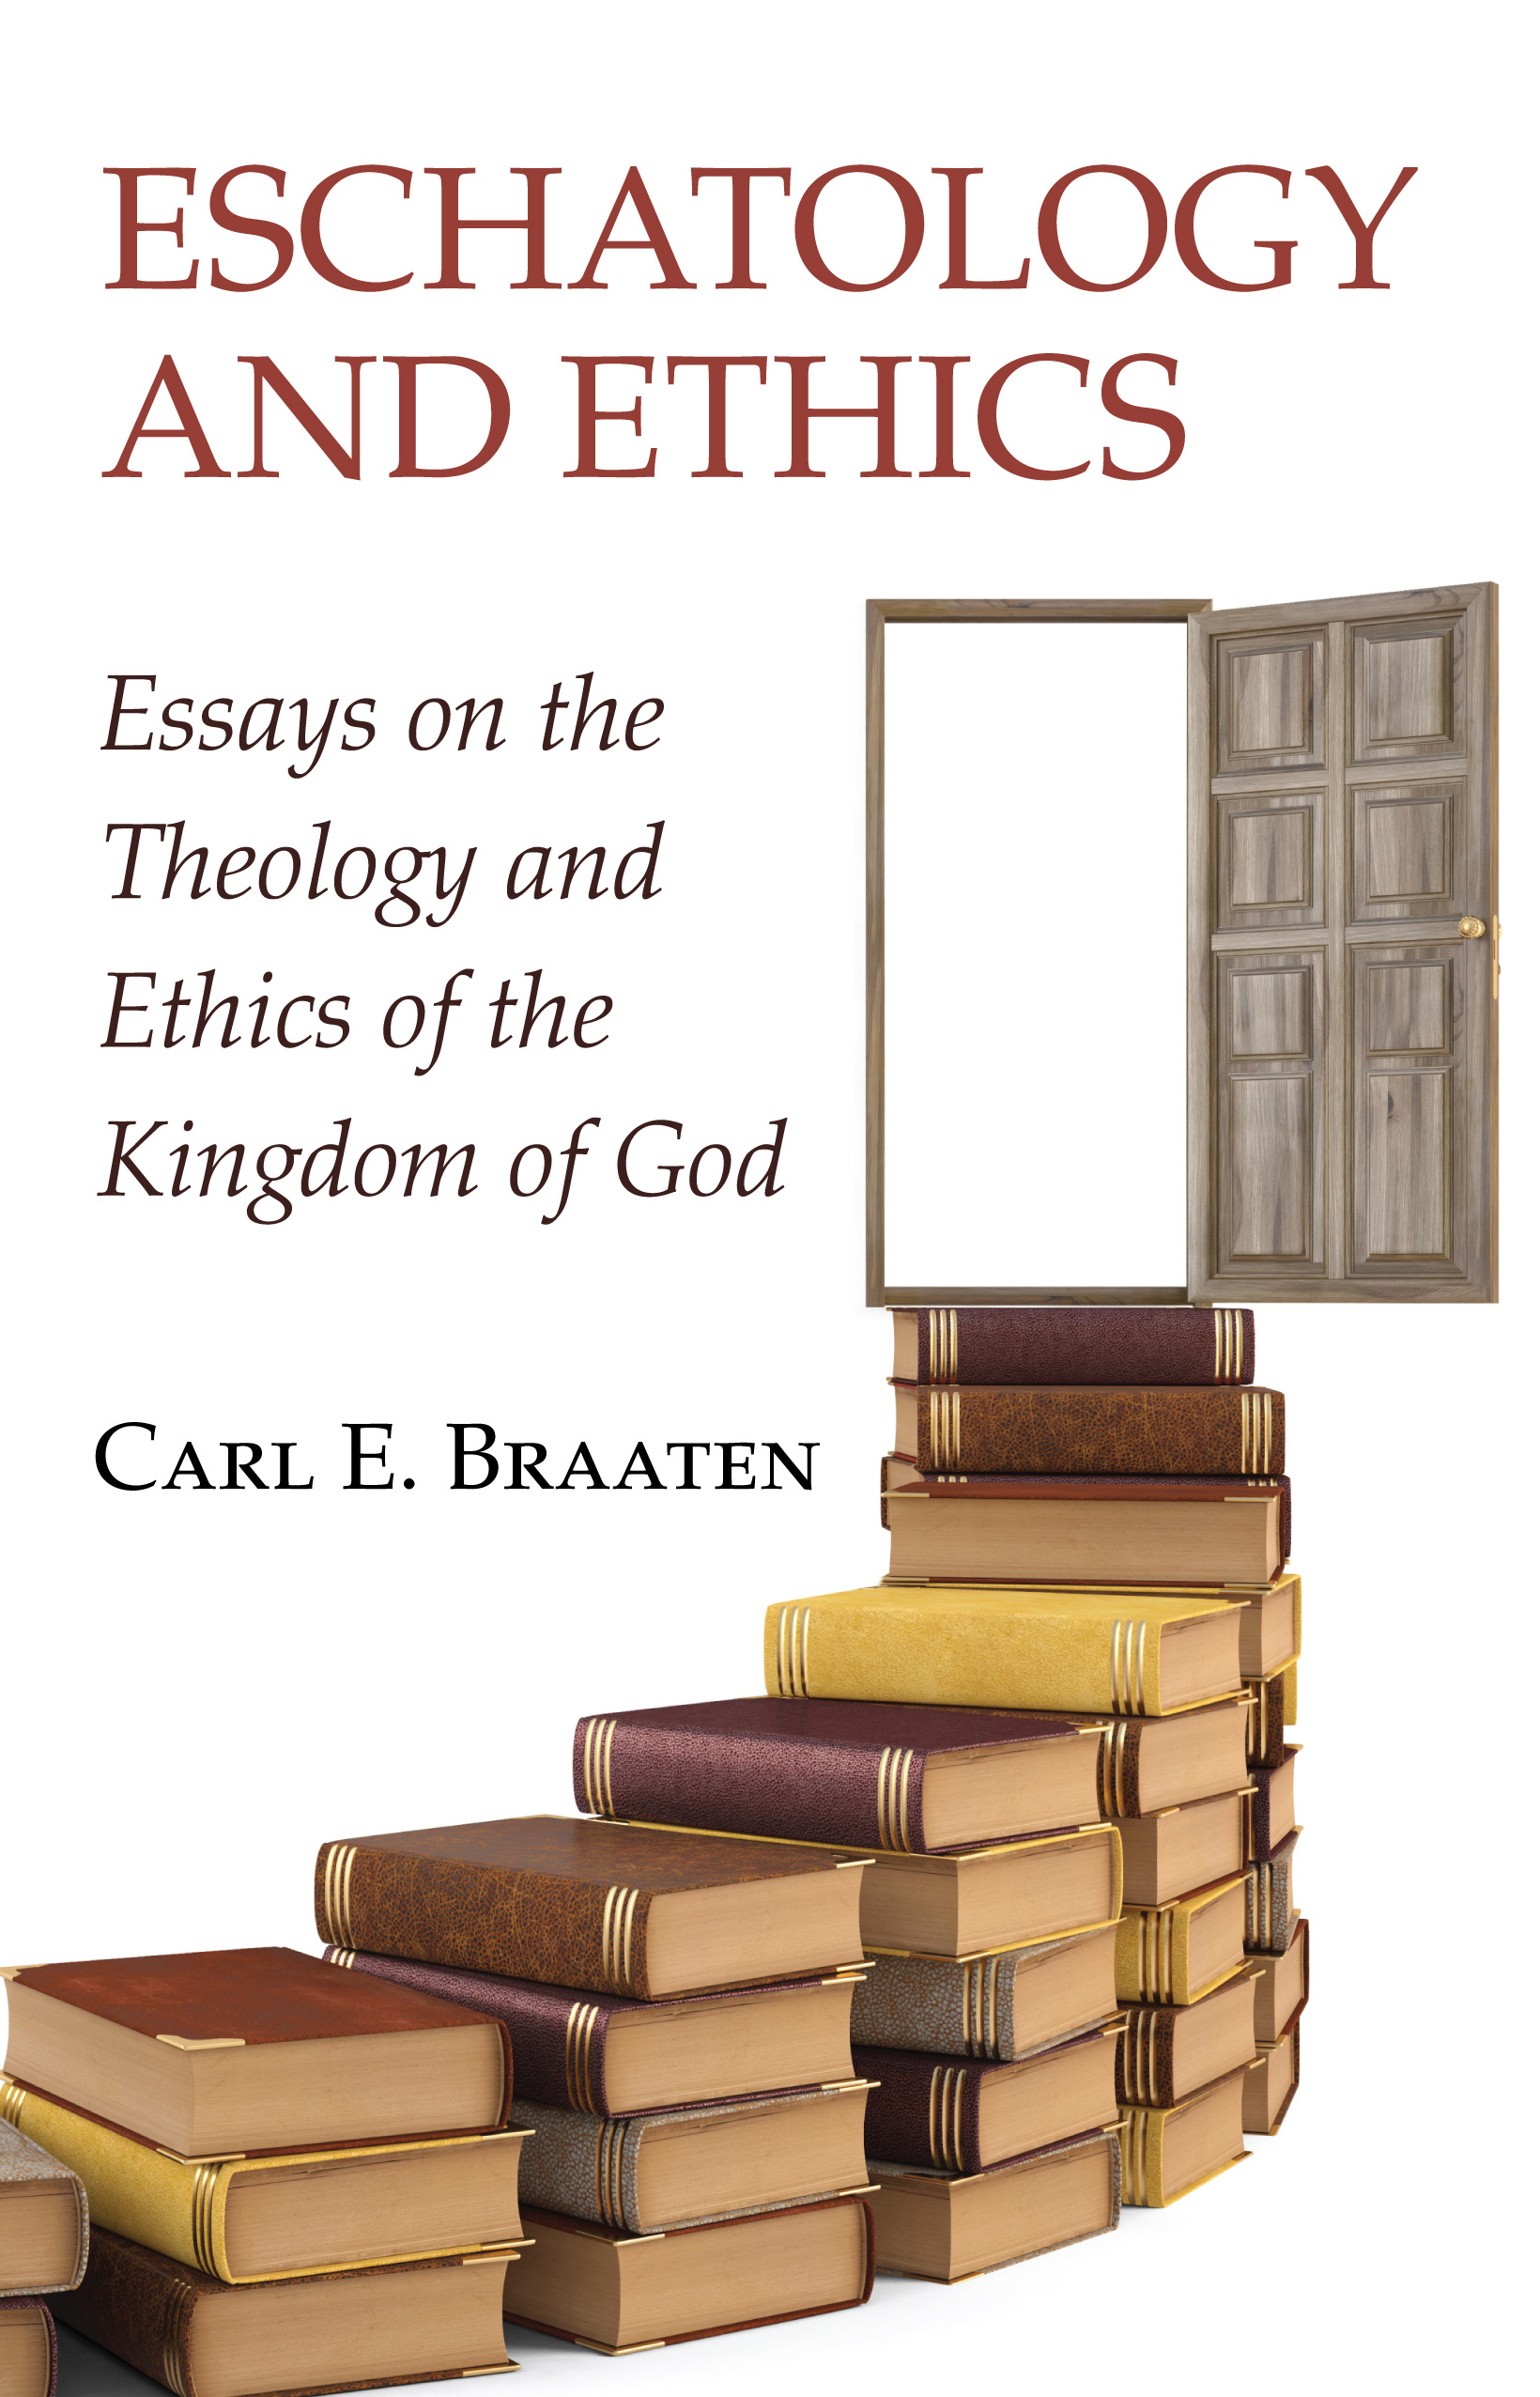 essay on eschatology Eschatology, or the study of last things, has both intrigued and astonished theologians and christians across the world the common conception for christians is that life continues after death.